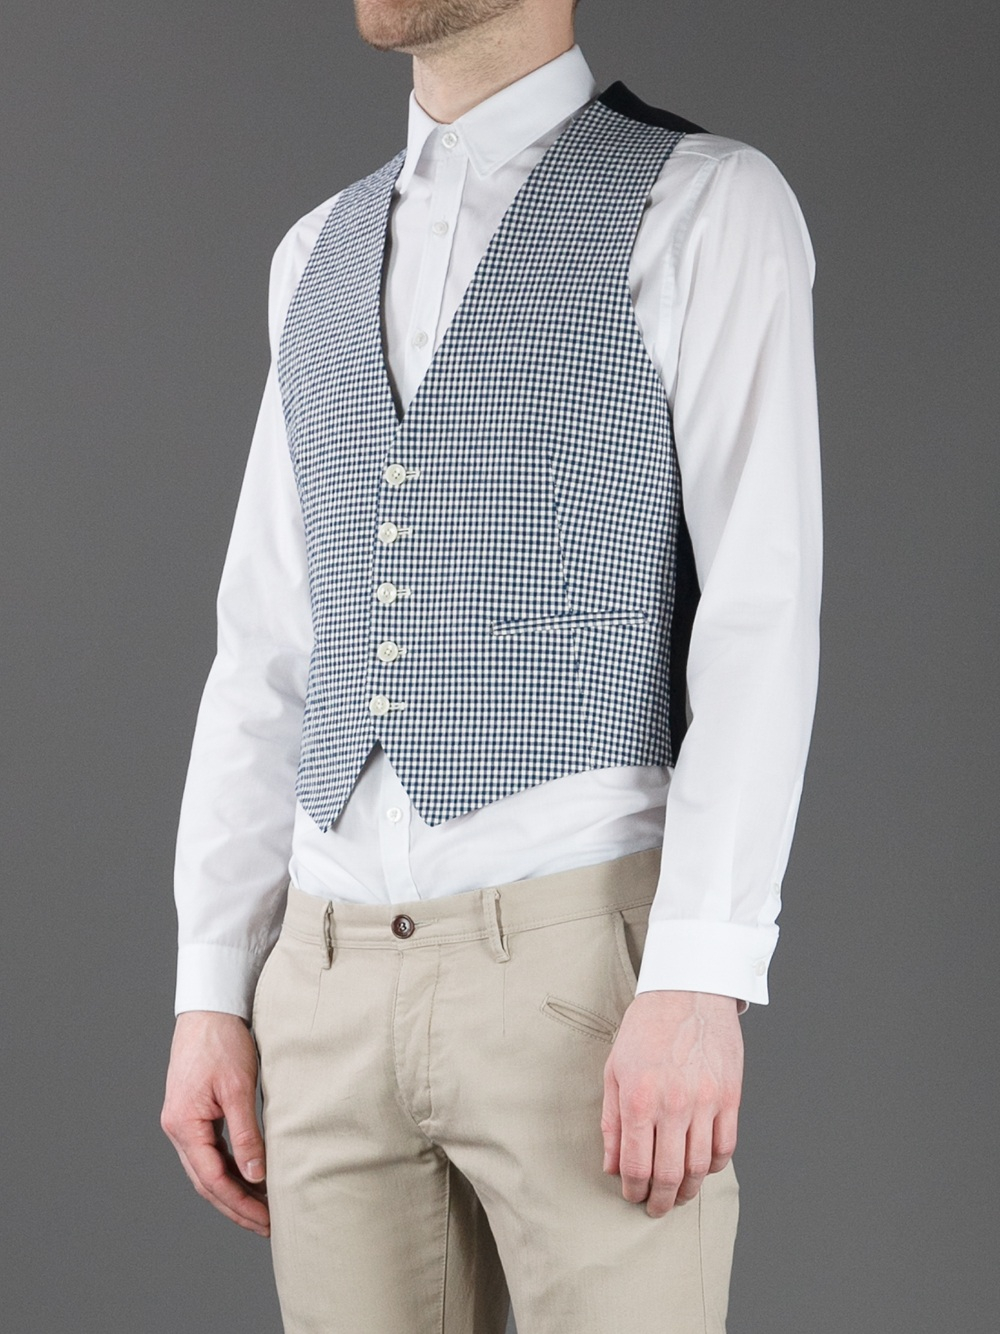 Lyst - Tagliatore Gingham Gilet in Blue for Men